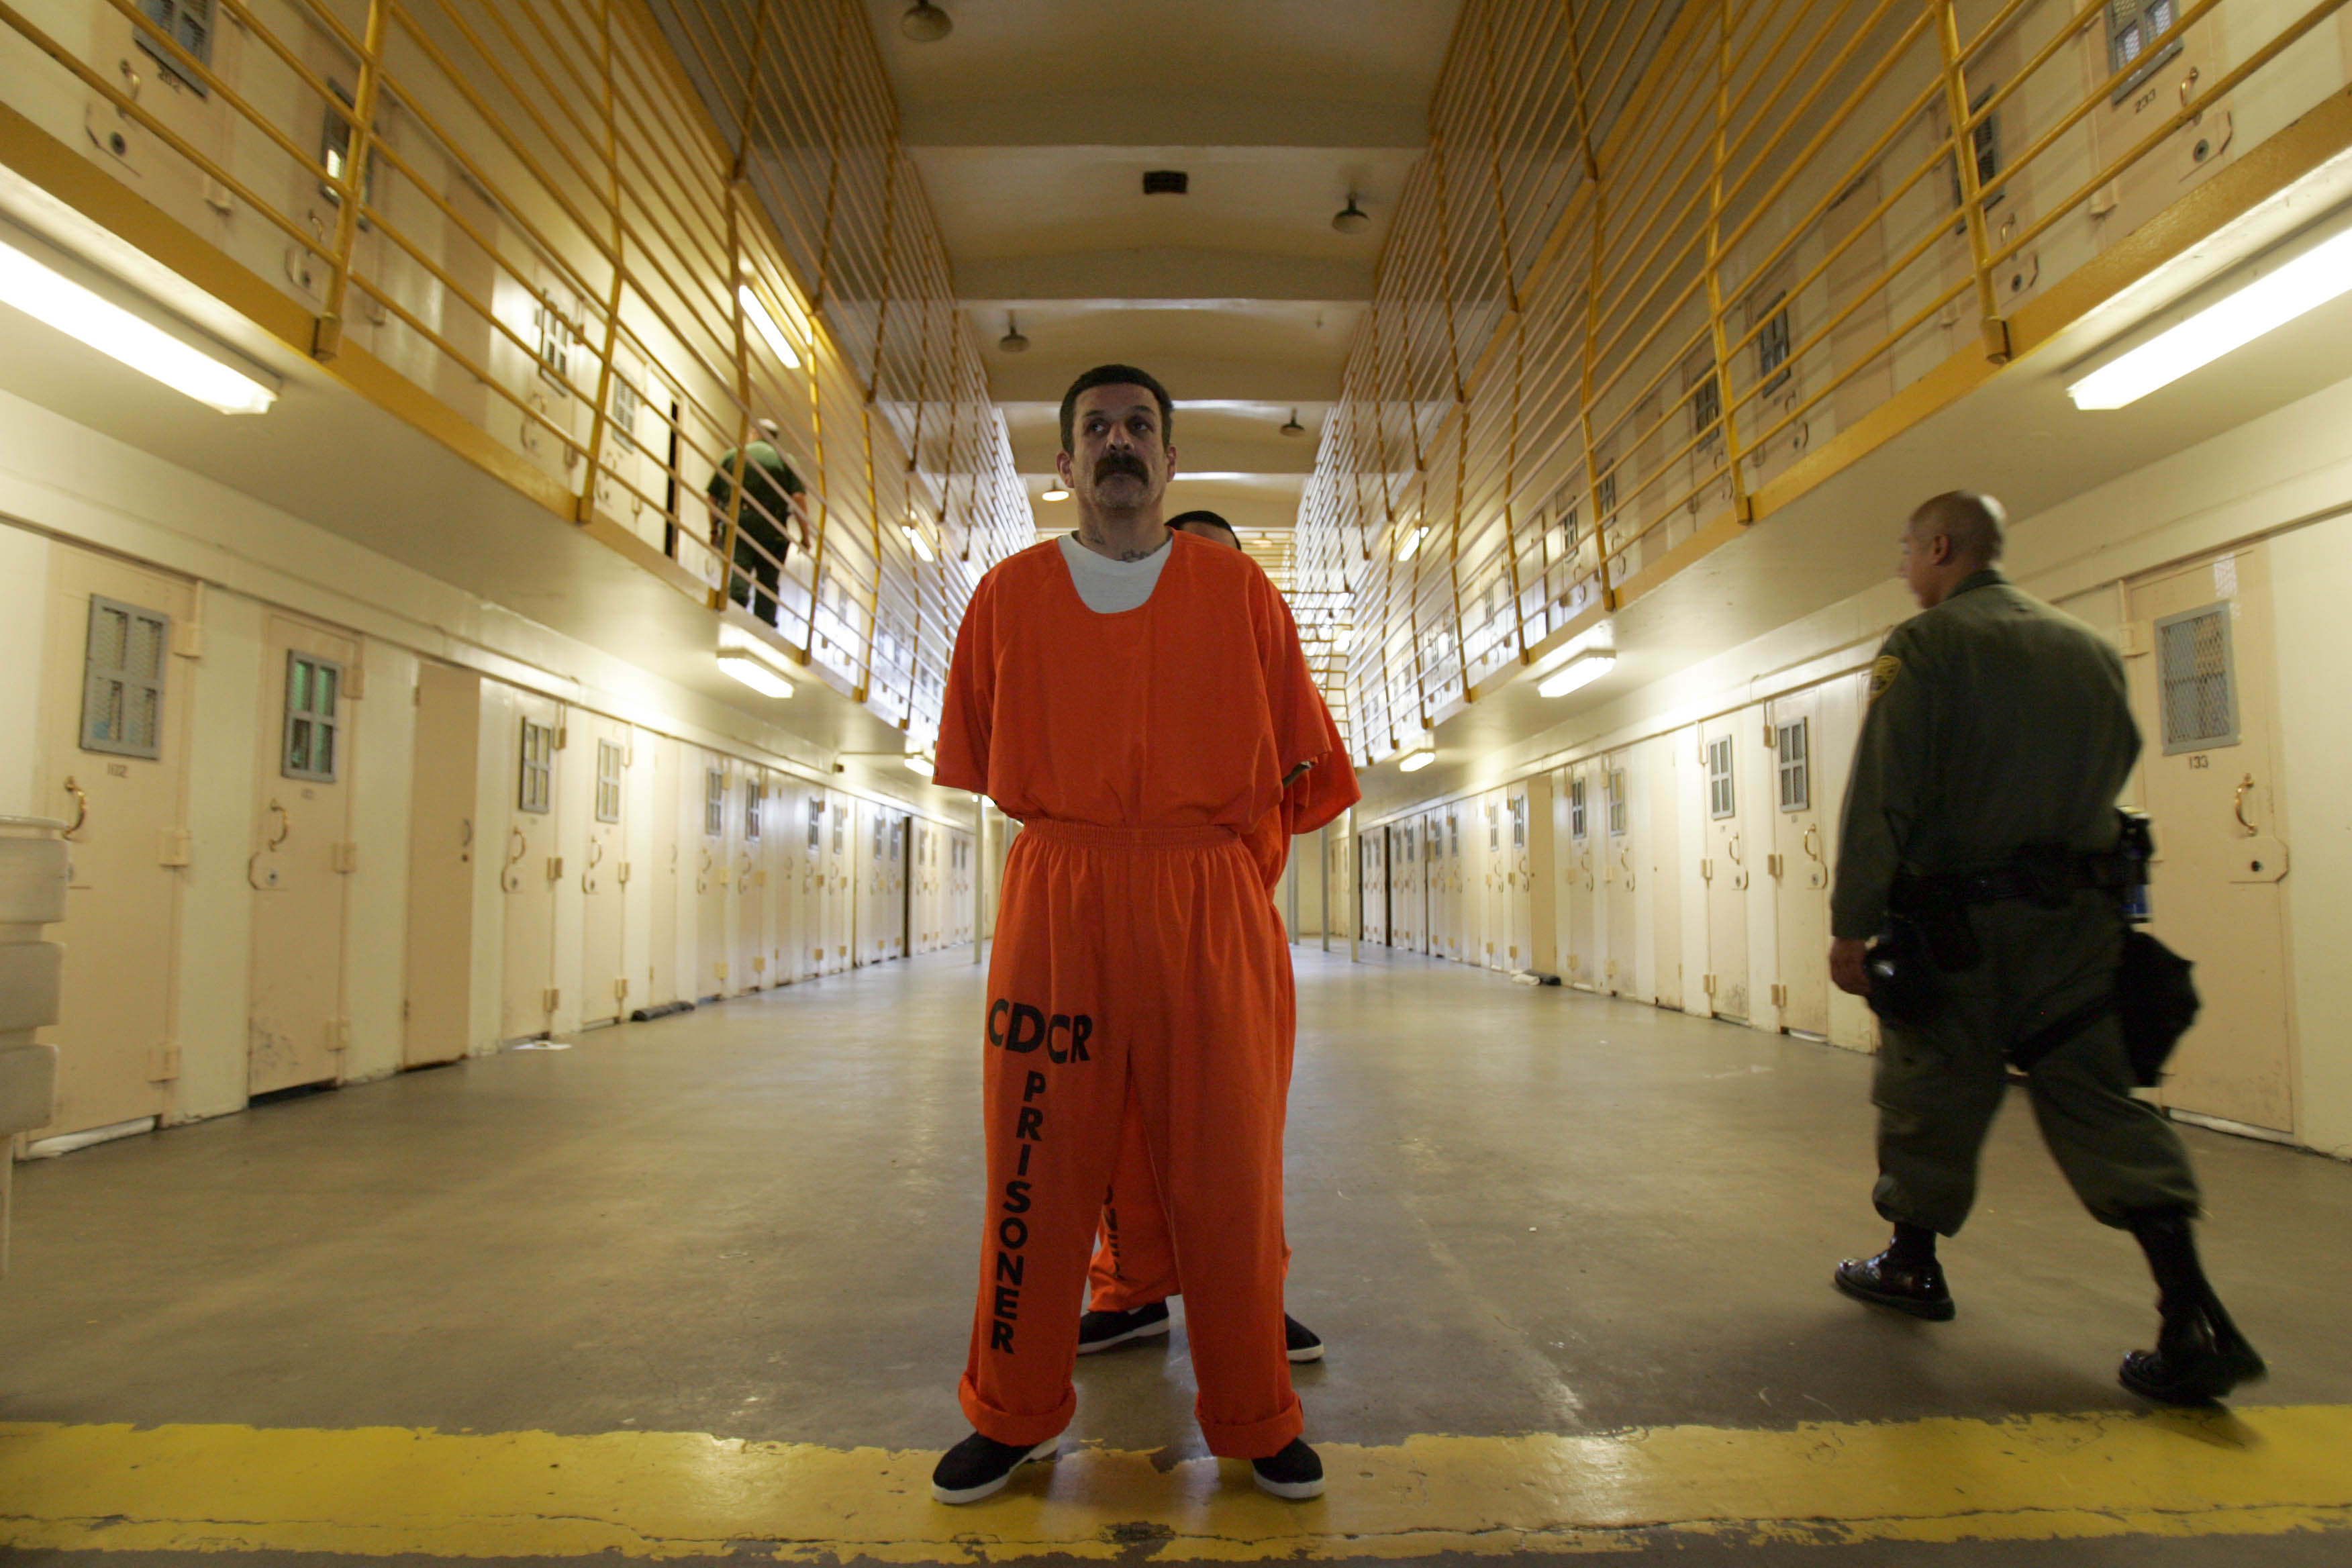 Inmates are lined up in Madrone Hall at the California Institution for Men in Chino, California, on May 24, 2011.